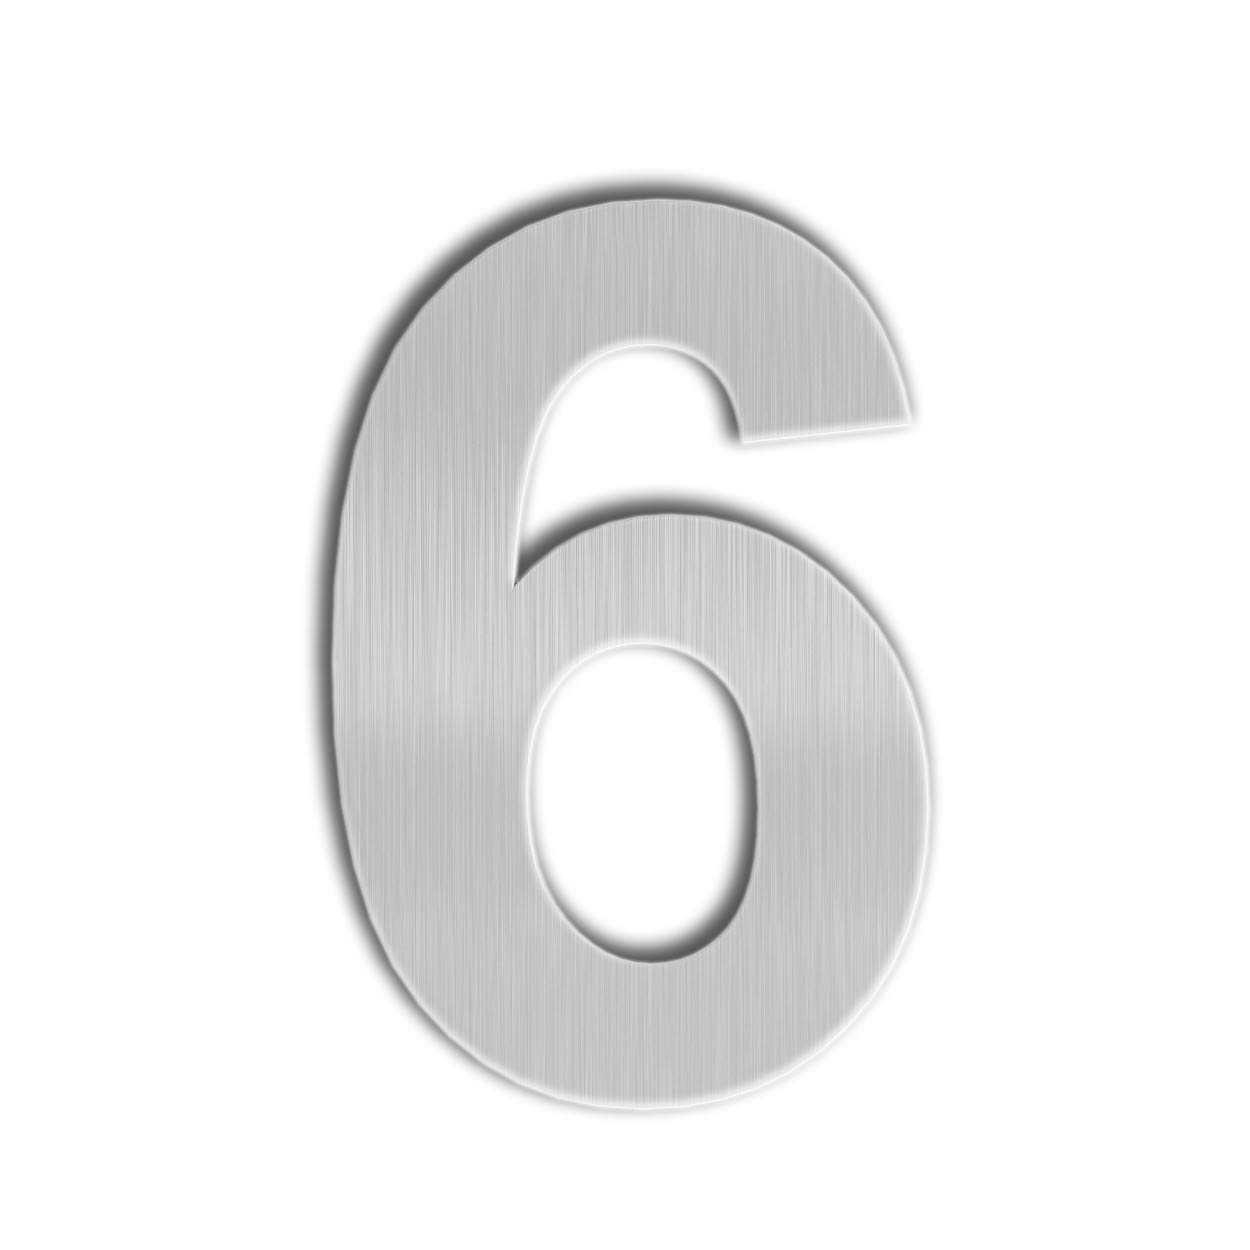 Qt modern house number super large 12 inch brushed stainless steel number 6 six 9 nine floating appearance easy to install and made of solid 304